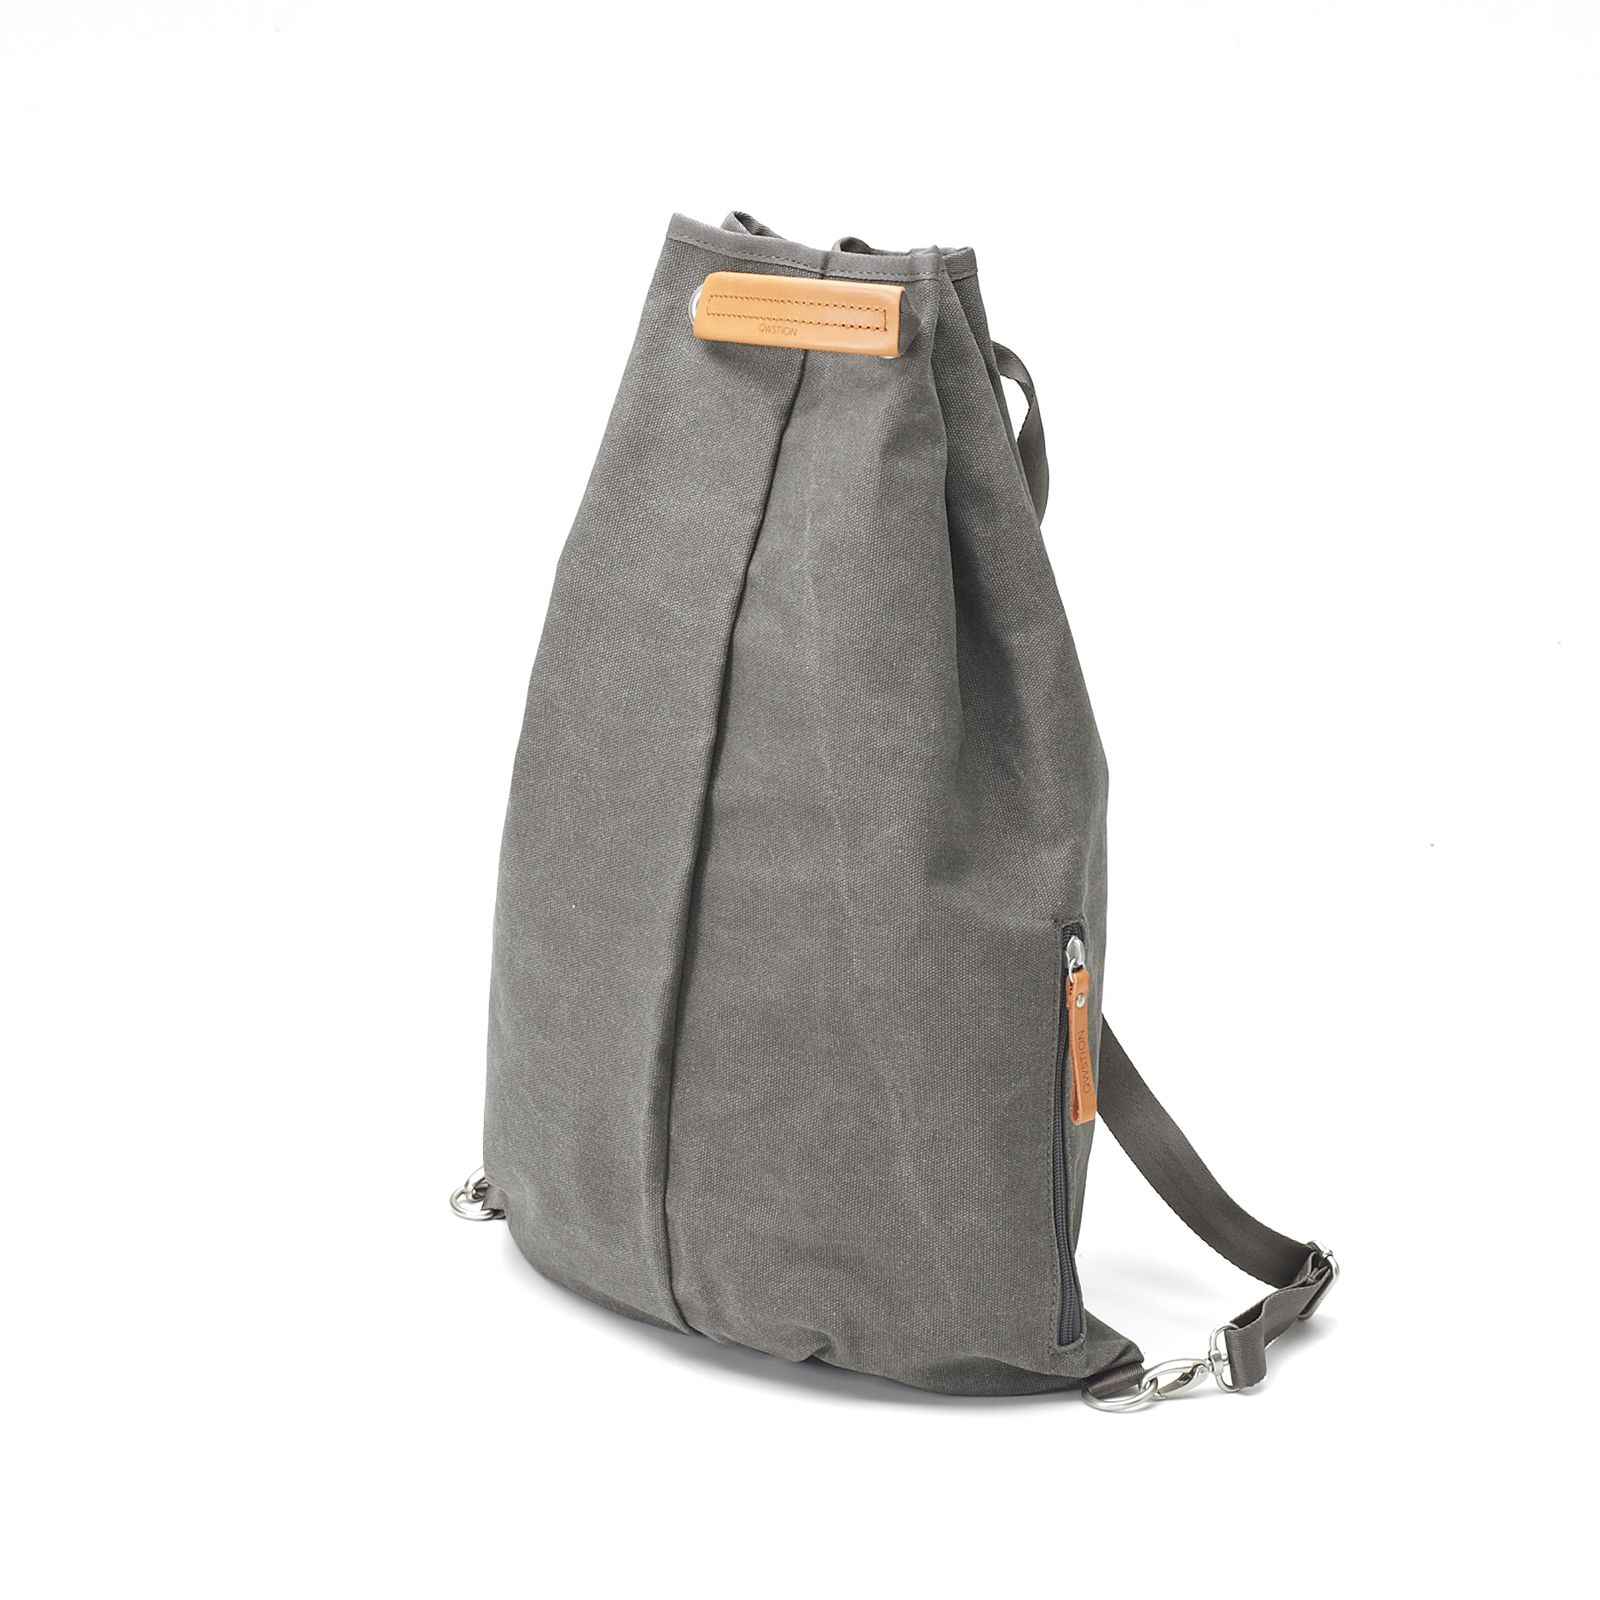 Simple Bag - Washed Grey